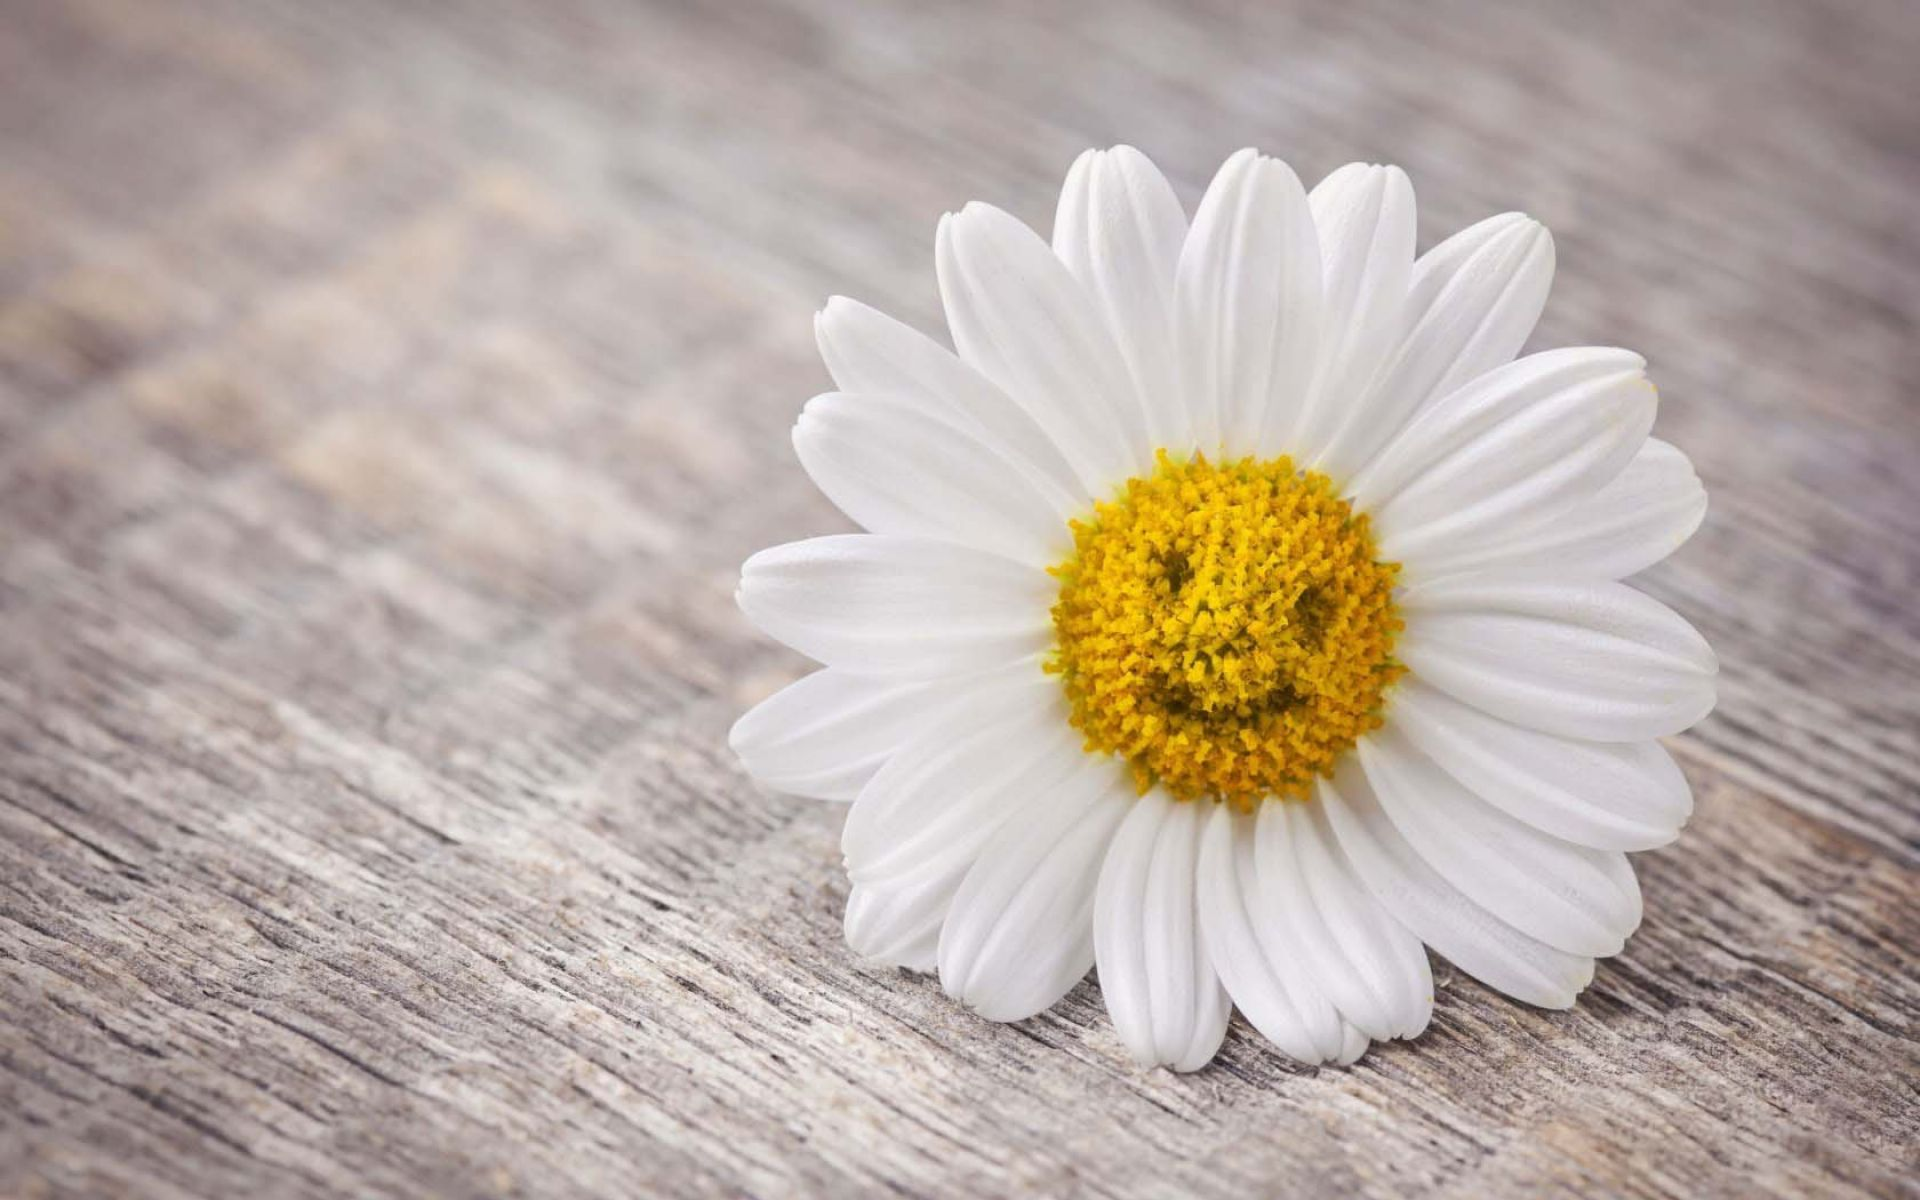 Beautiful Quotes And Inspirational Wallpapers Hd Daisy Wallpaper High Quality Pixelstalk Net